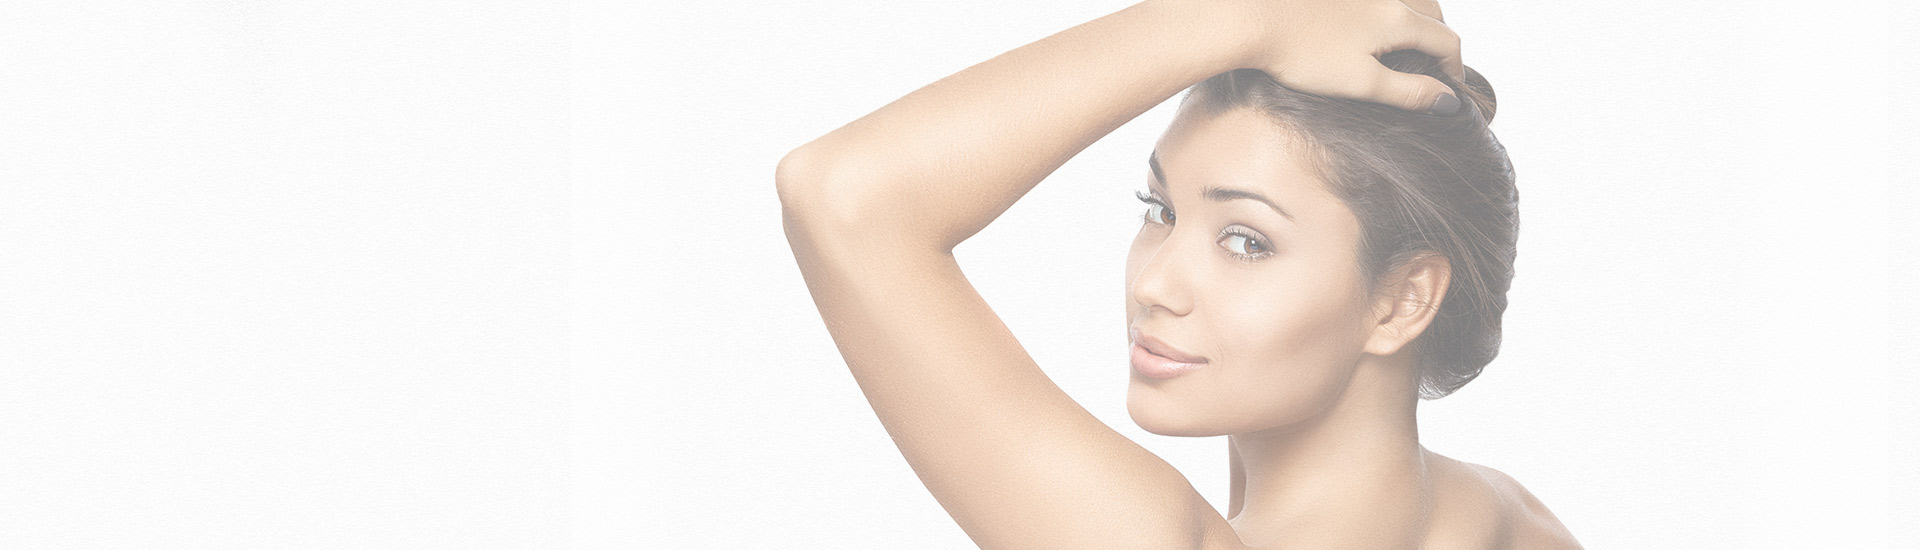 Thermage Skin Tightening Denver | Laronn Clinique